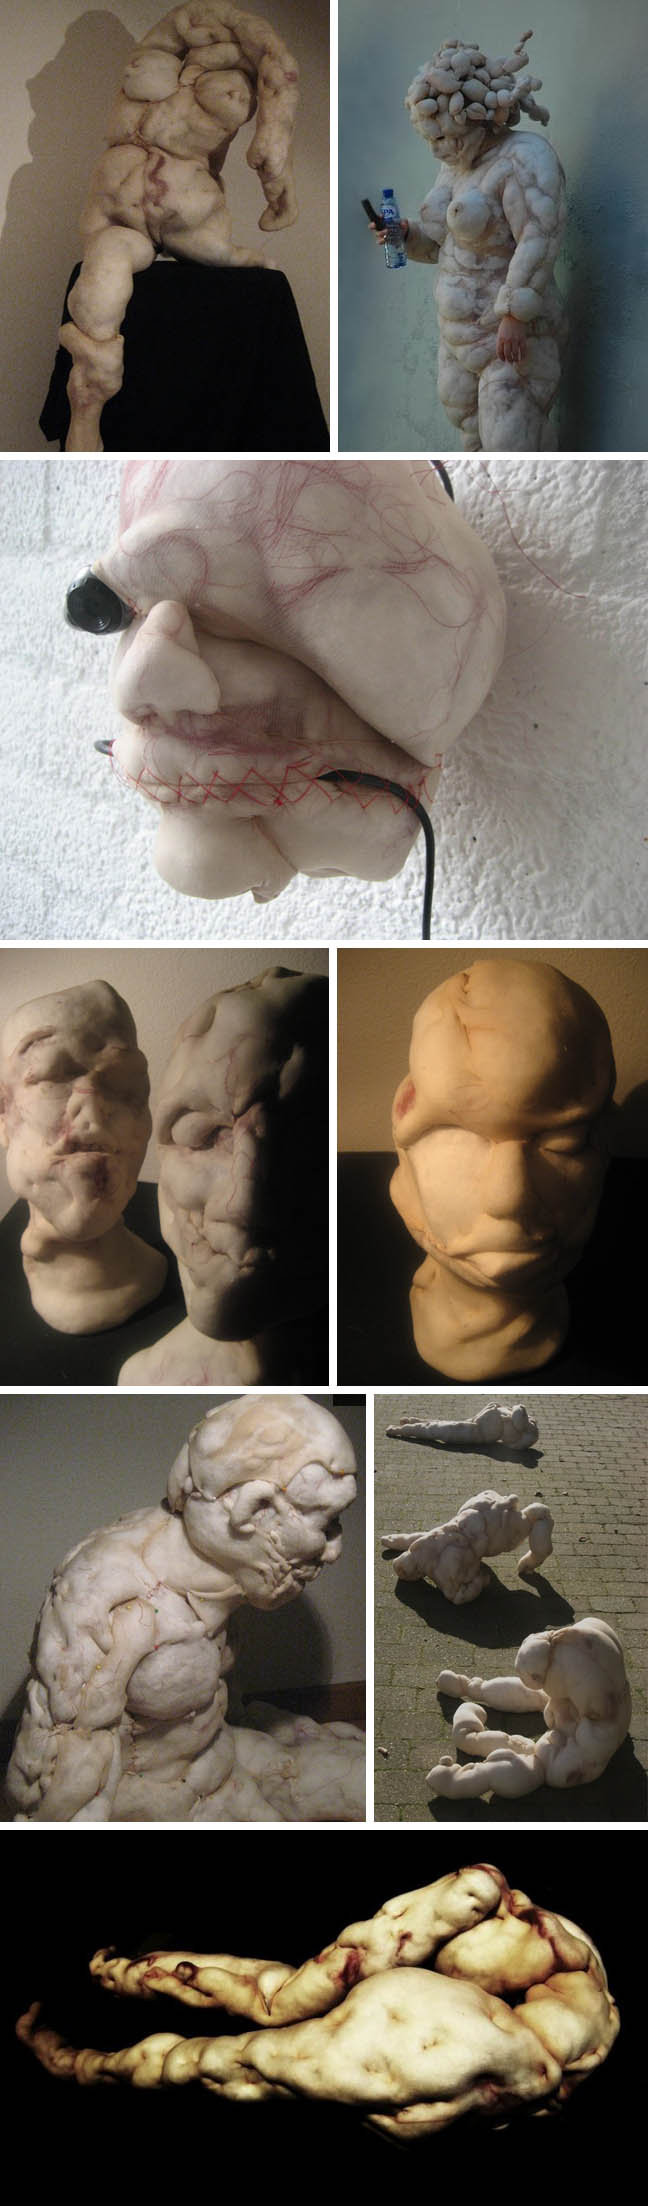 Nylon soft sculptures, Dutch contemporary art, Rosa Verloop, Creepy portraits, disturbing cabbage patch doll like sculptures